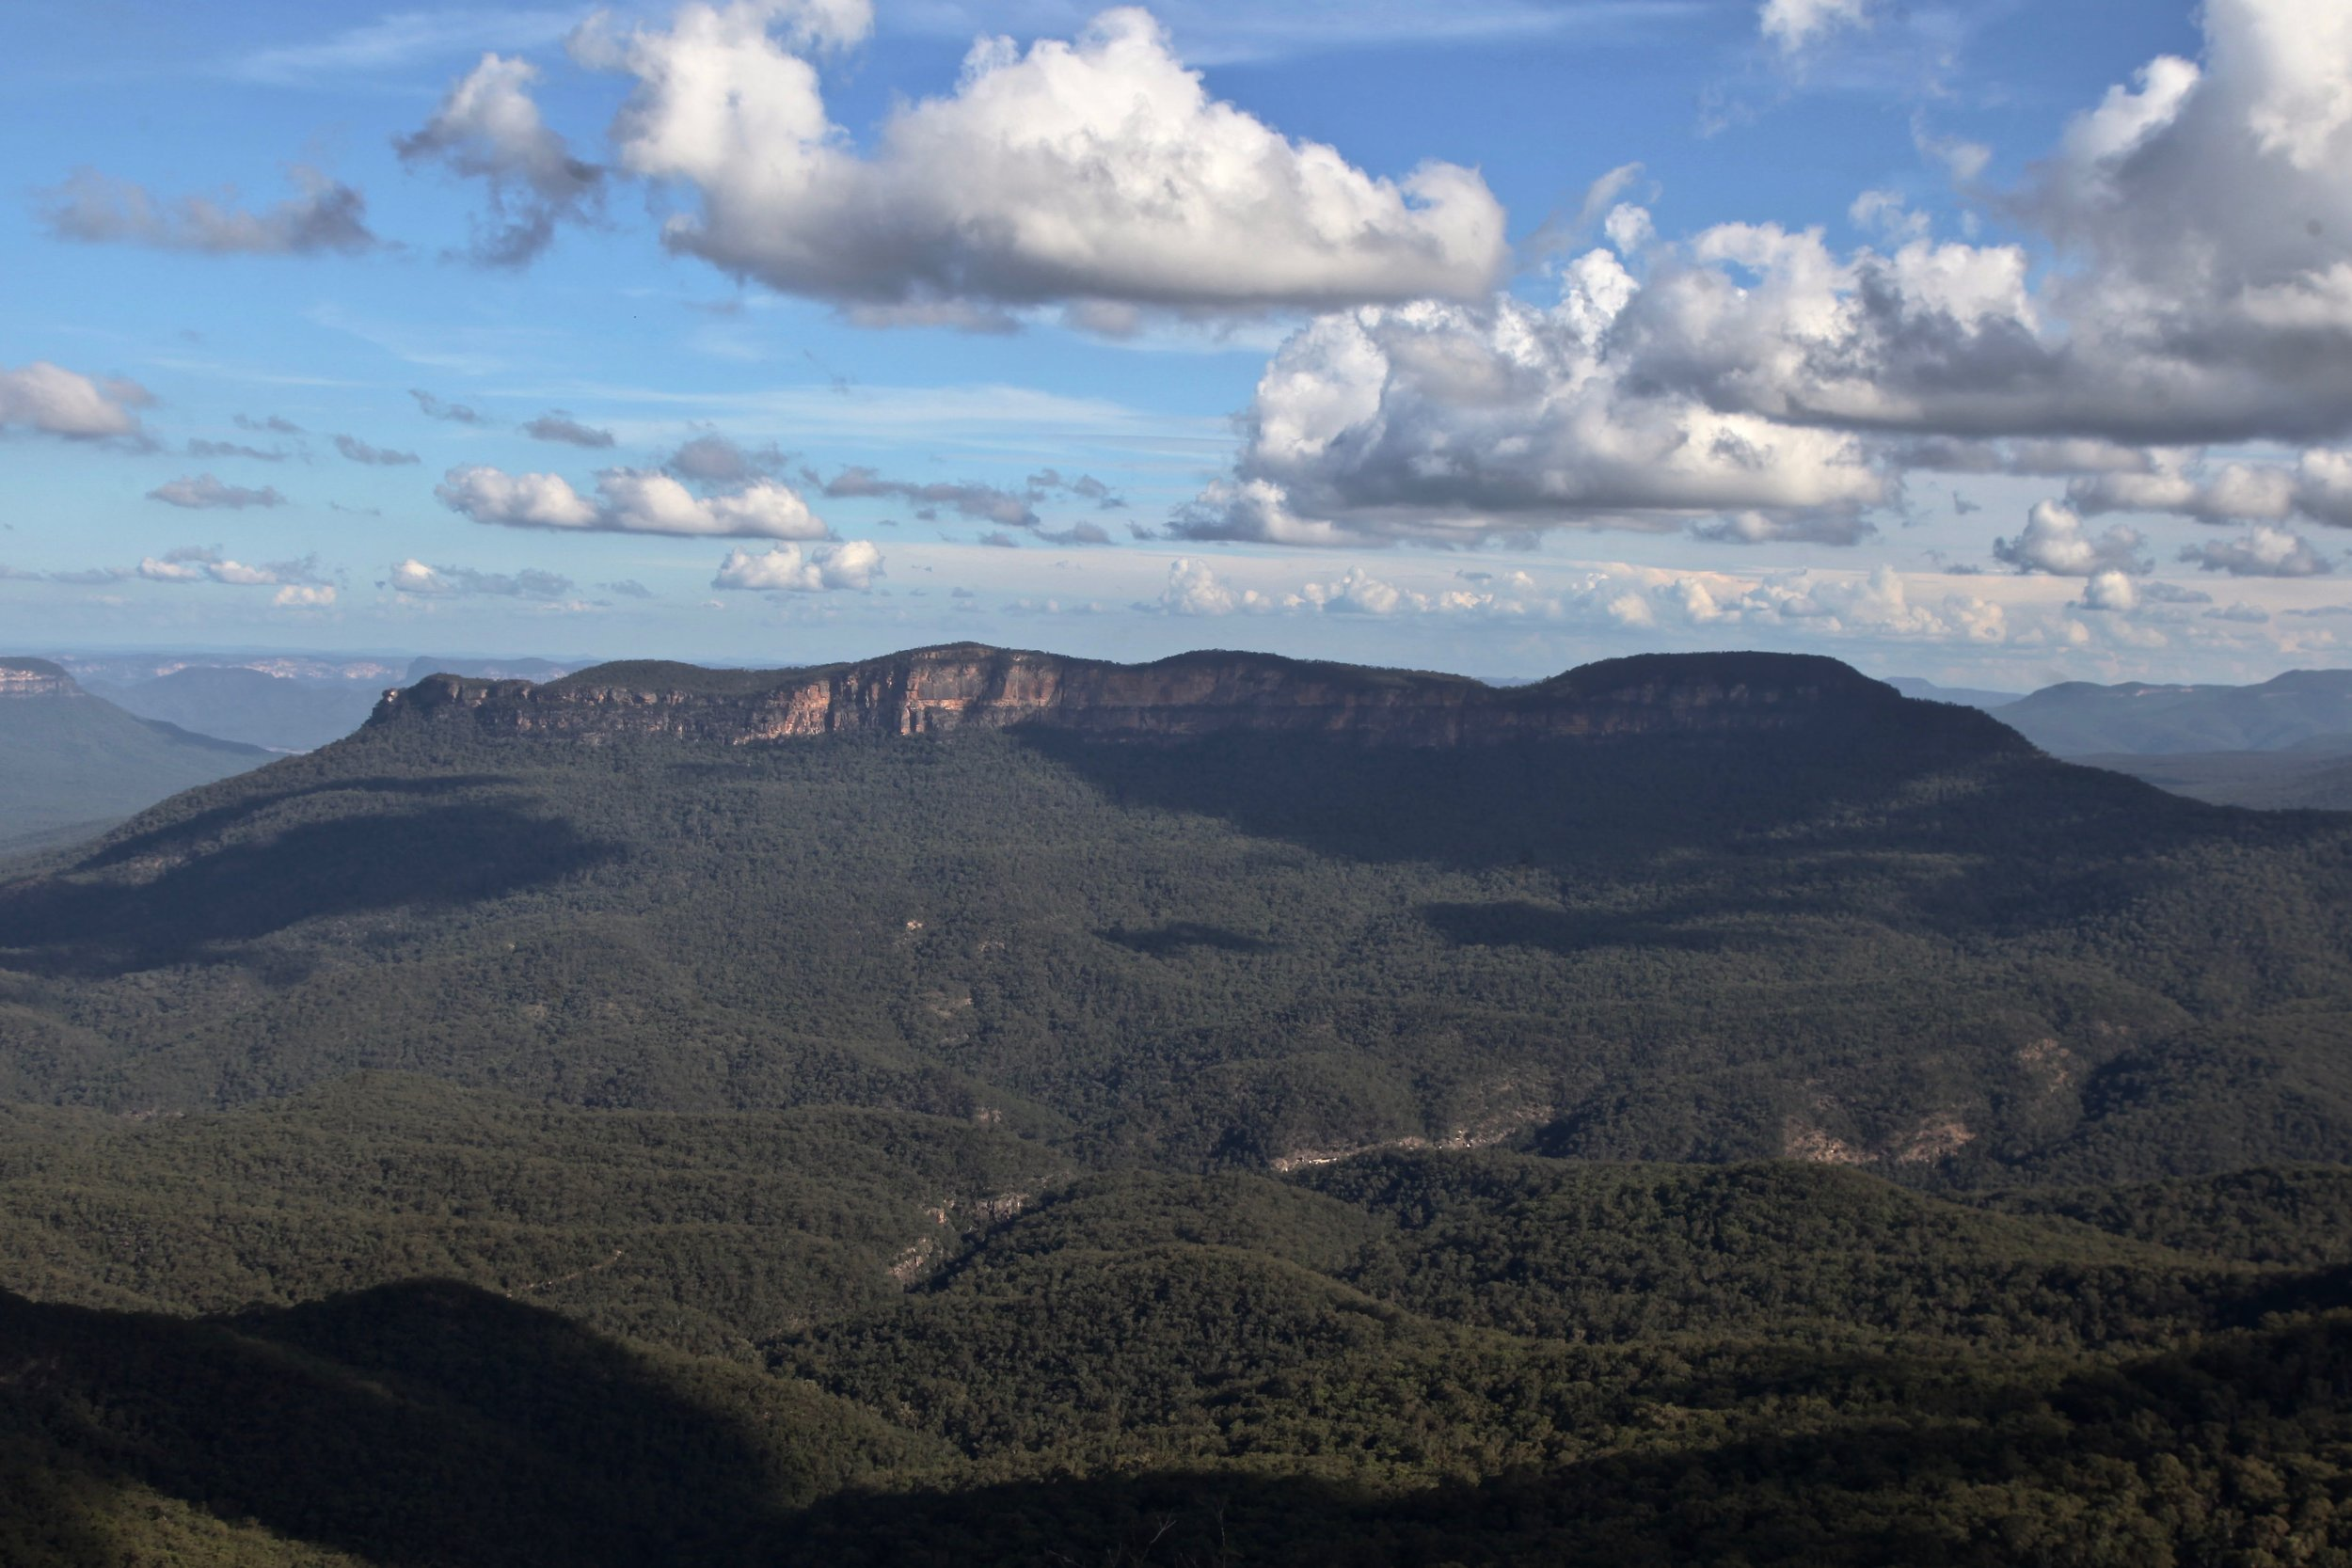 View from Elysian Rock on the Prince Henry Cliff walk in the Blue Mountains.